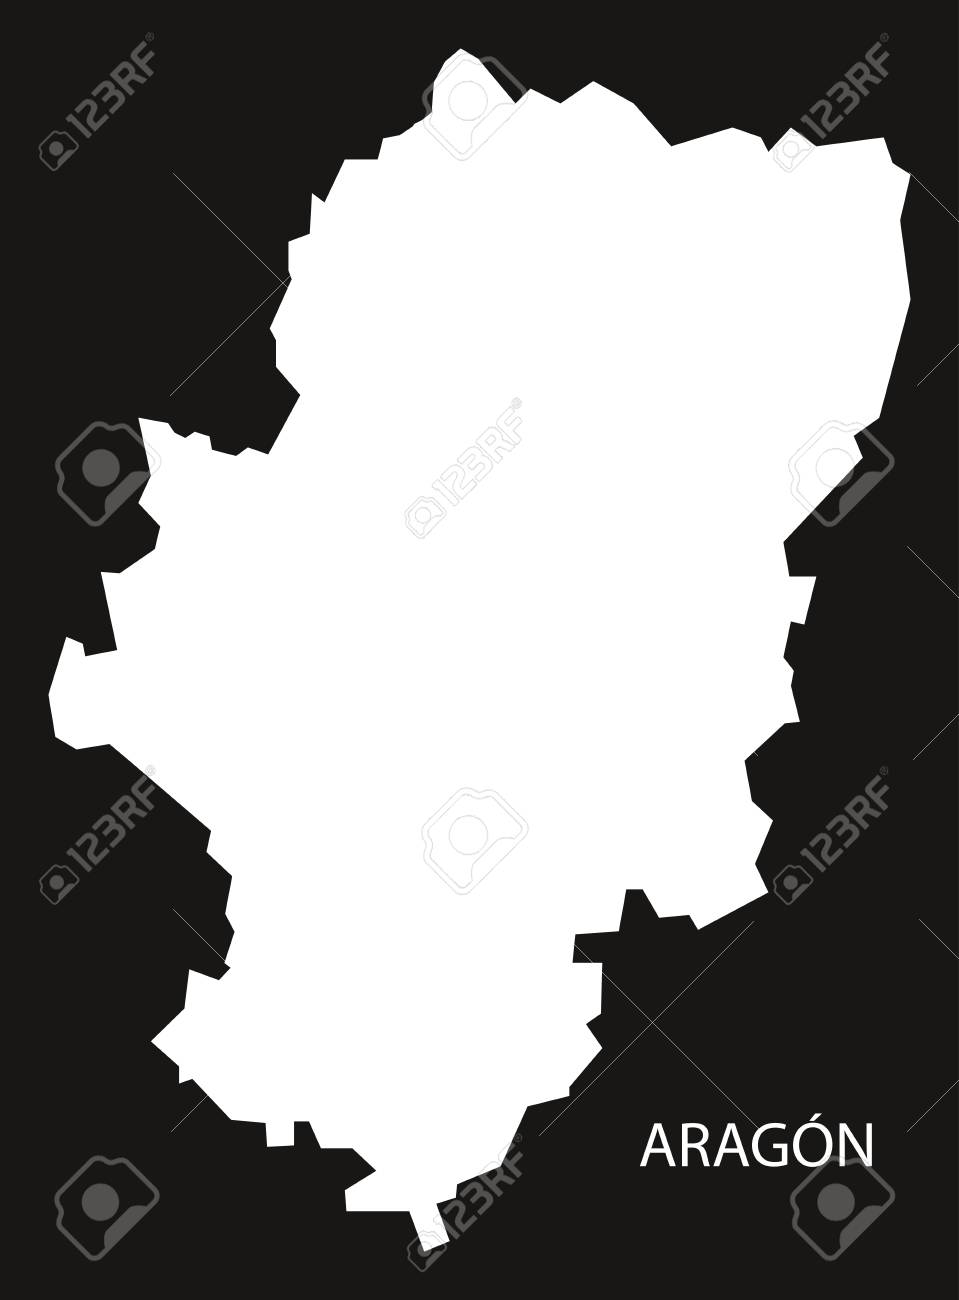 Aragon Spain Map Black Inverted Silhouette Illustration Royalty